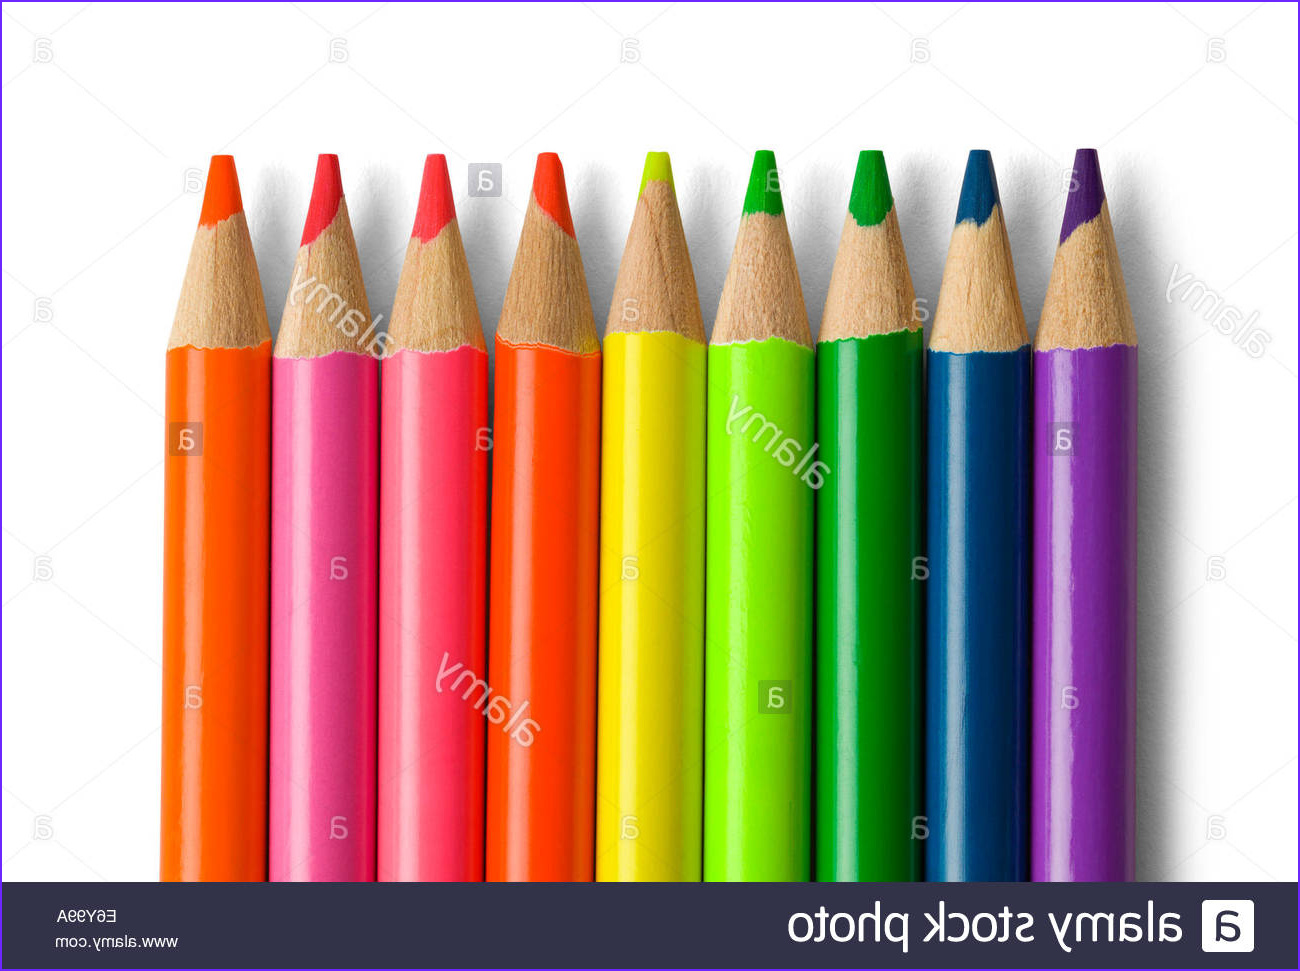 Bright Coloring Pencils Awesome Images Several Bright Colored Pencils Lined Up isolated White